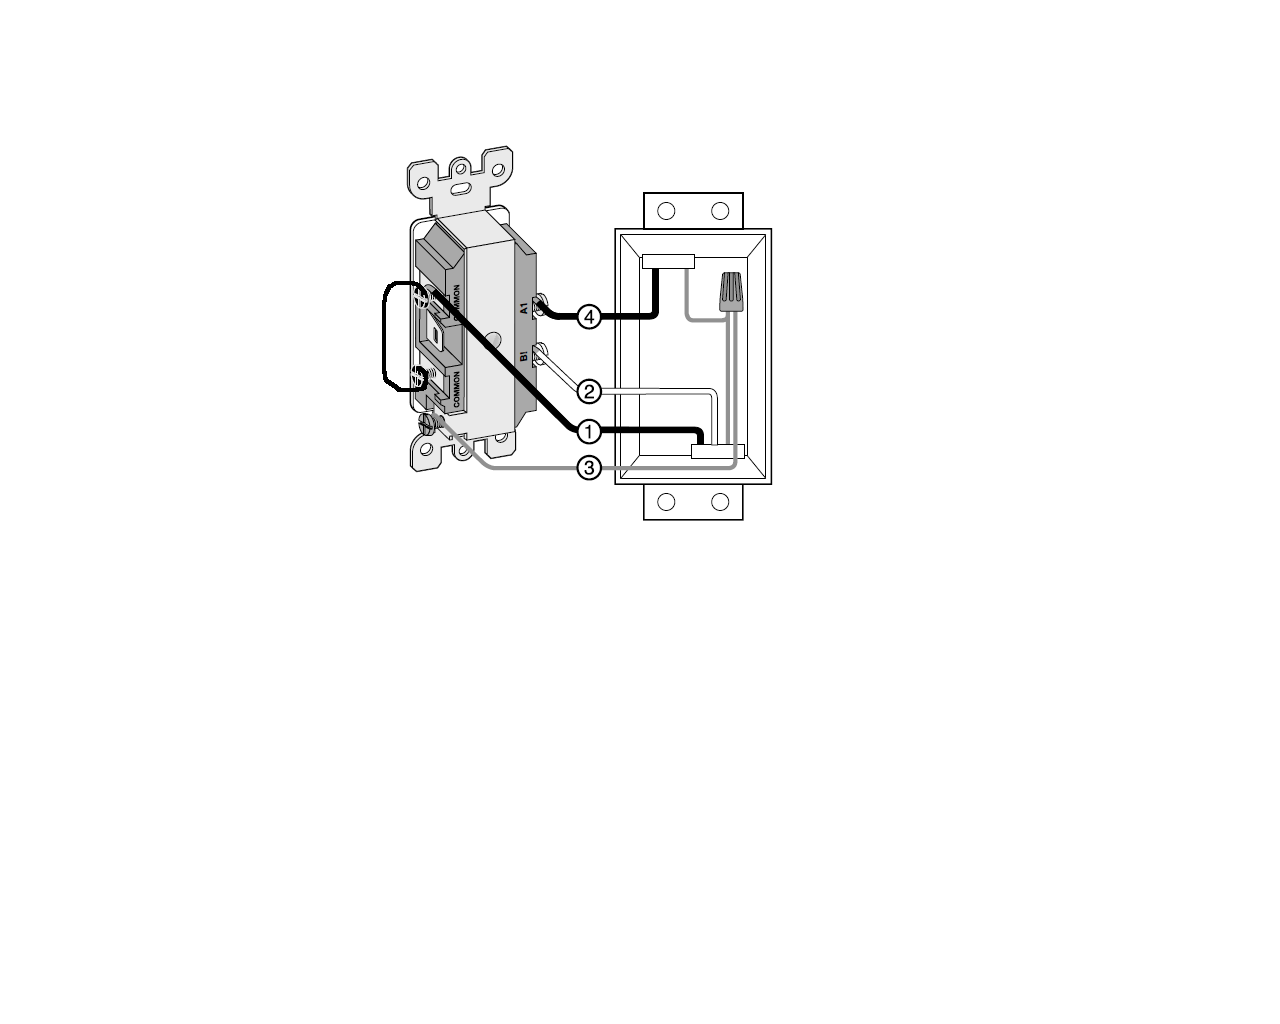 Cooper Pilot Light Switch Wire Diagram